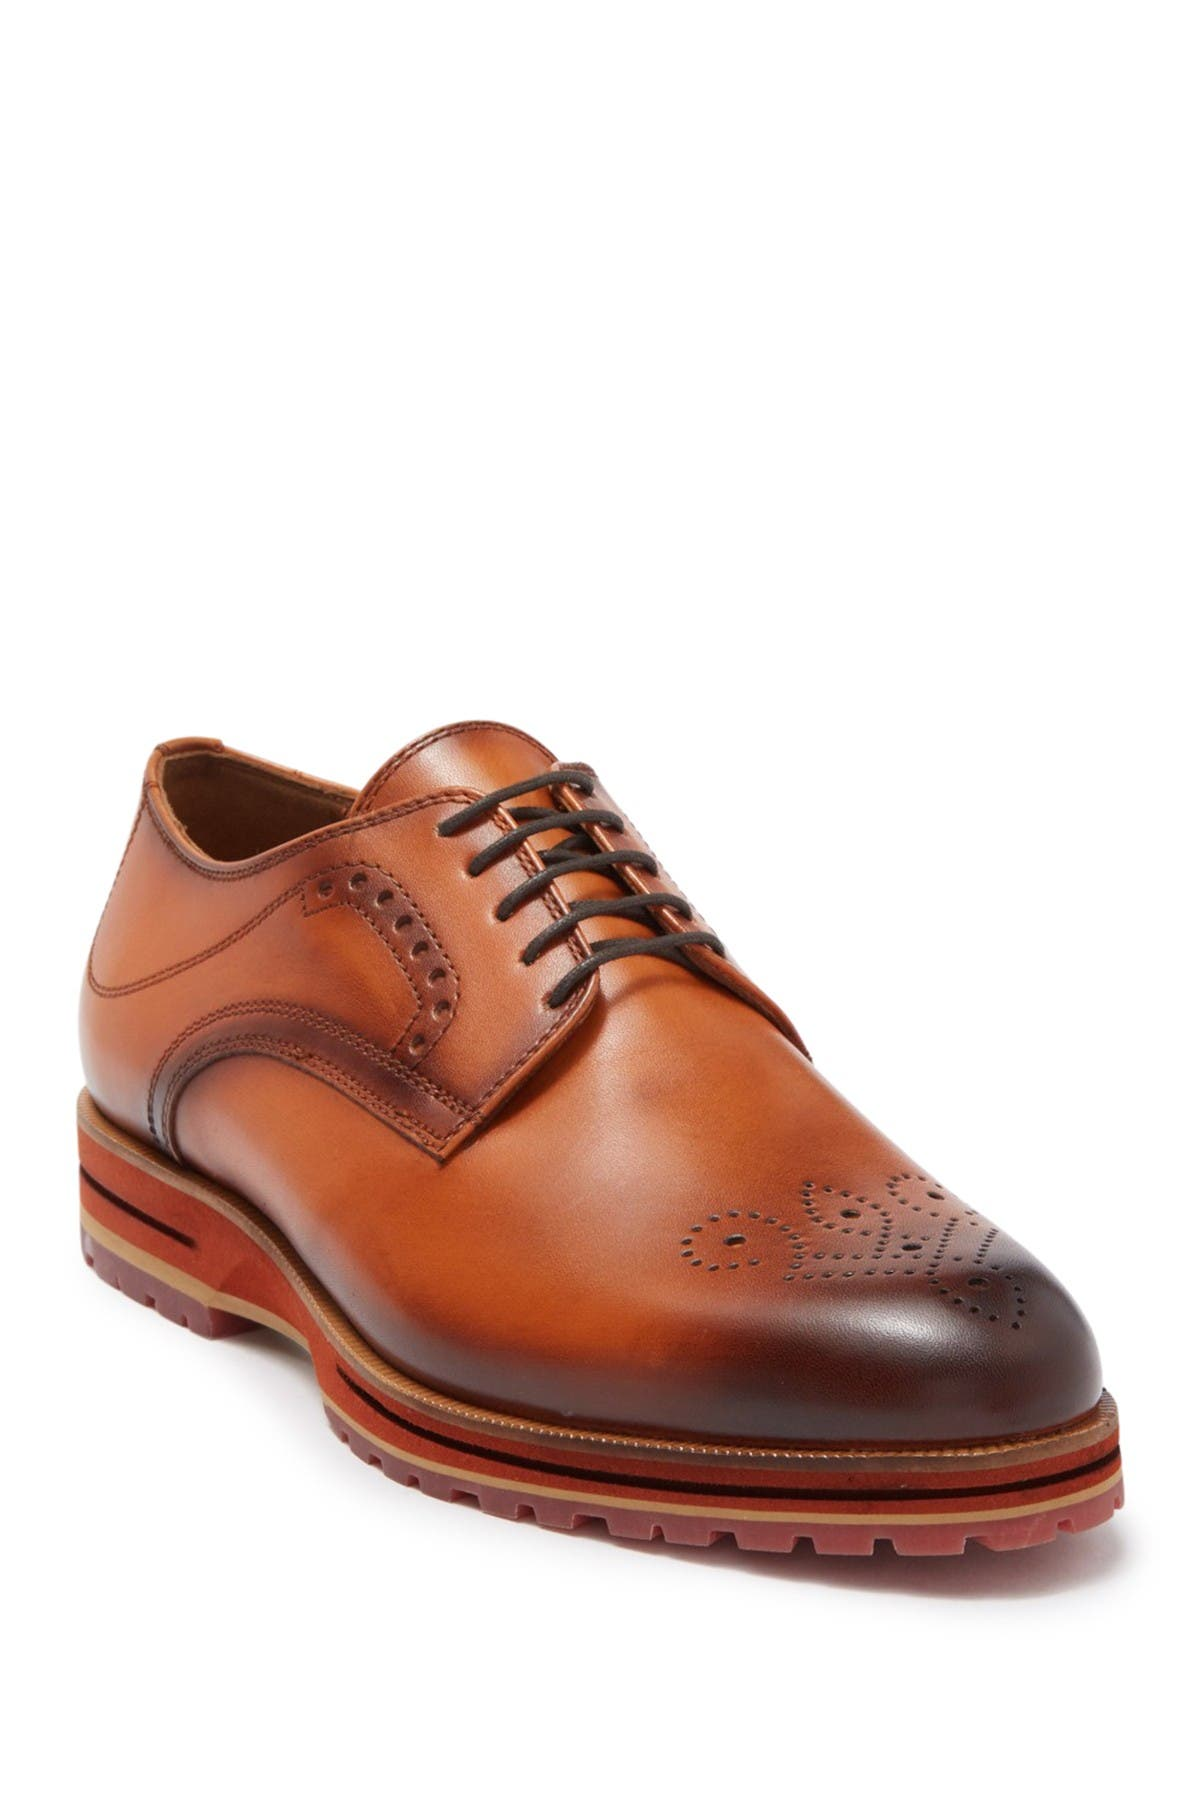 Image of MORAL CODE Mayson Leather Medallion Derby